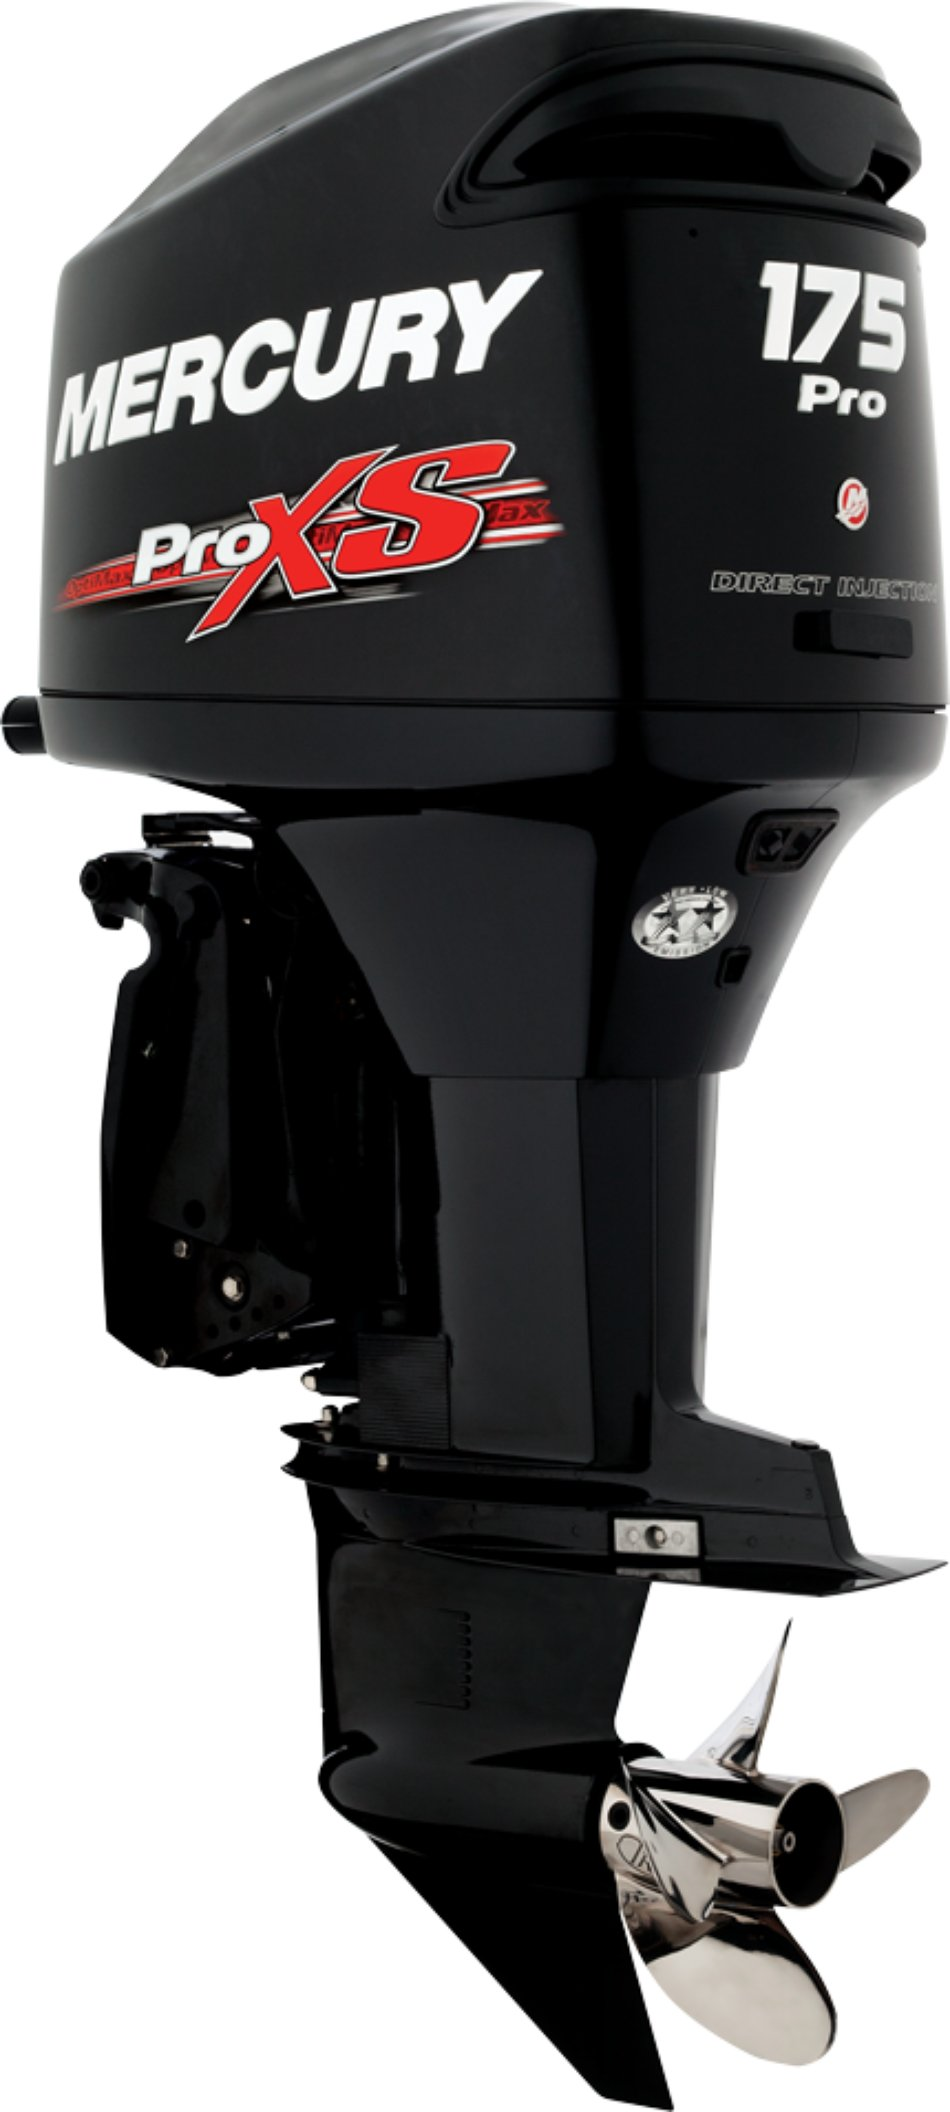 Performer - One of the only options in the performance consumer outboard market for lighter single engine boats. It checks most boxes but could use about 25 more horsepower.